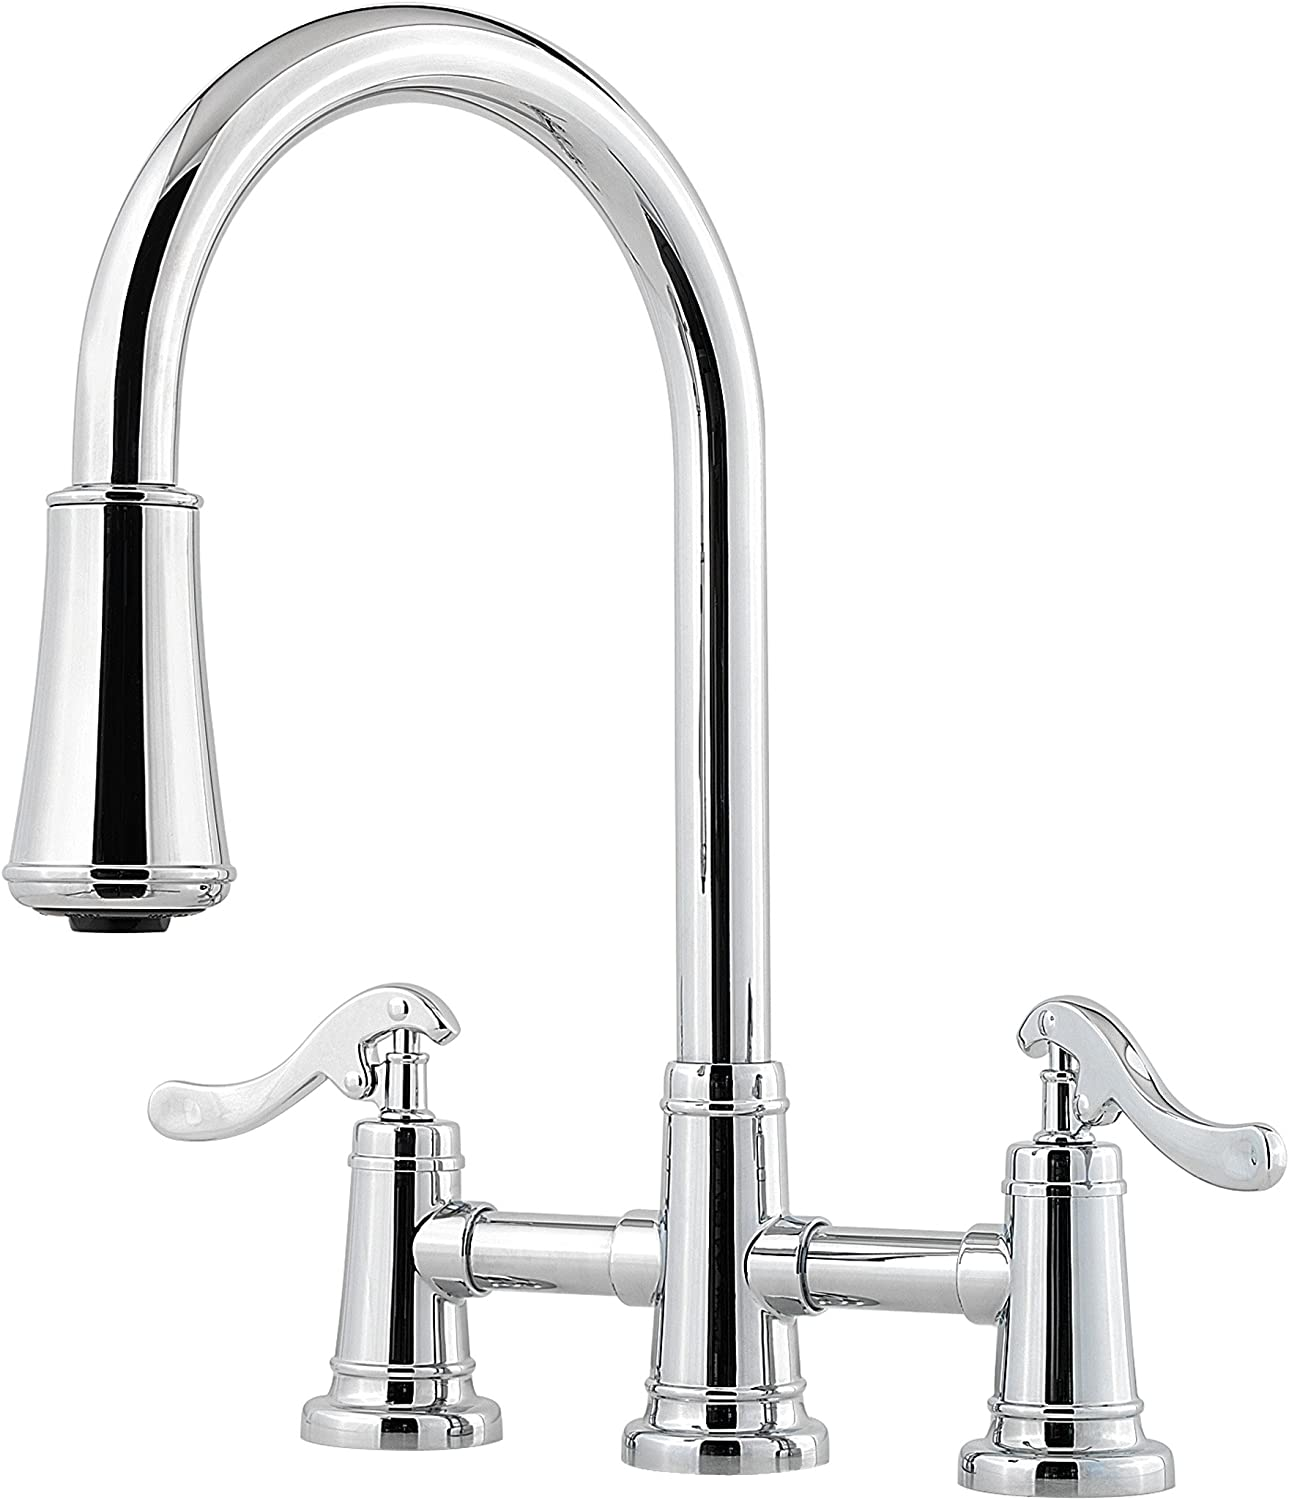 Pfister LG531YPC Ashfield 2-Handle Pull-Down Kitchen Faucet in Polished Chrome, 1.8 gpm